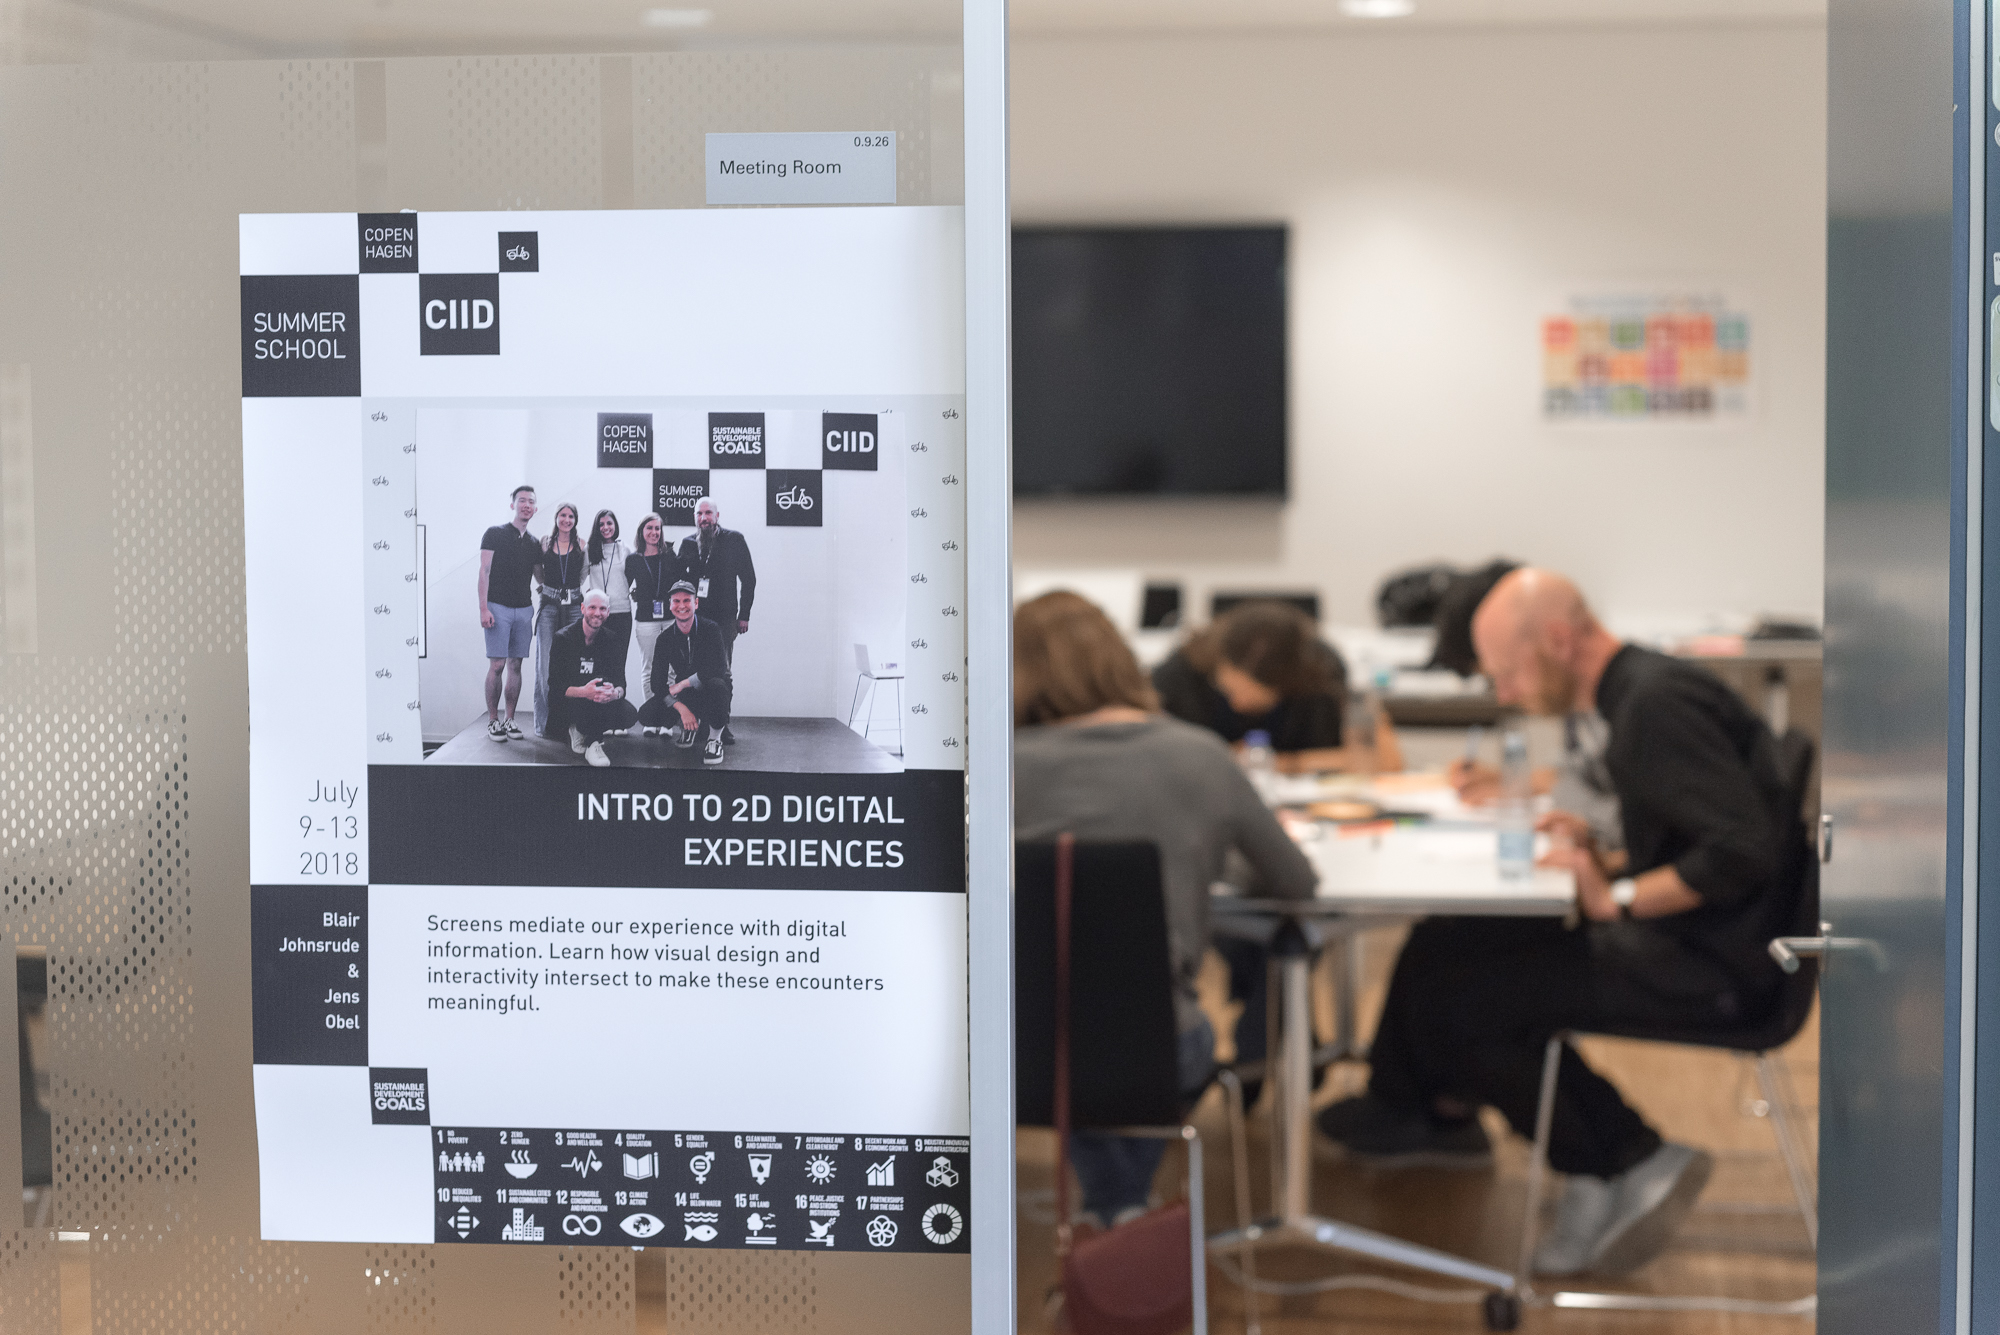 The workshop was called 'Intro to 2D Digital Experiences'